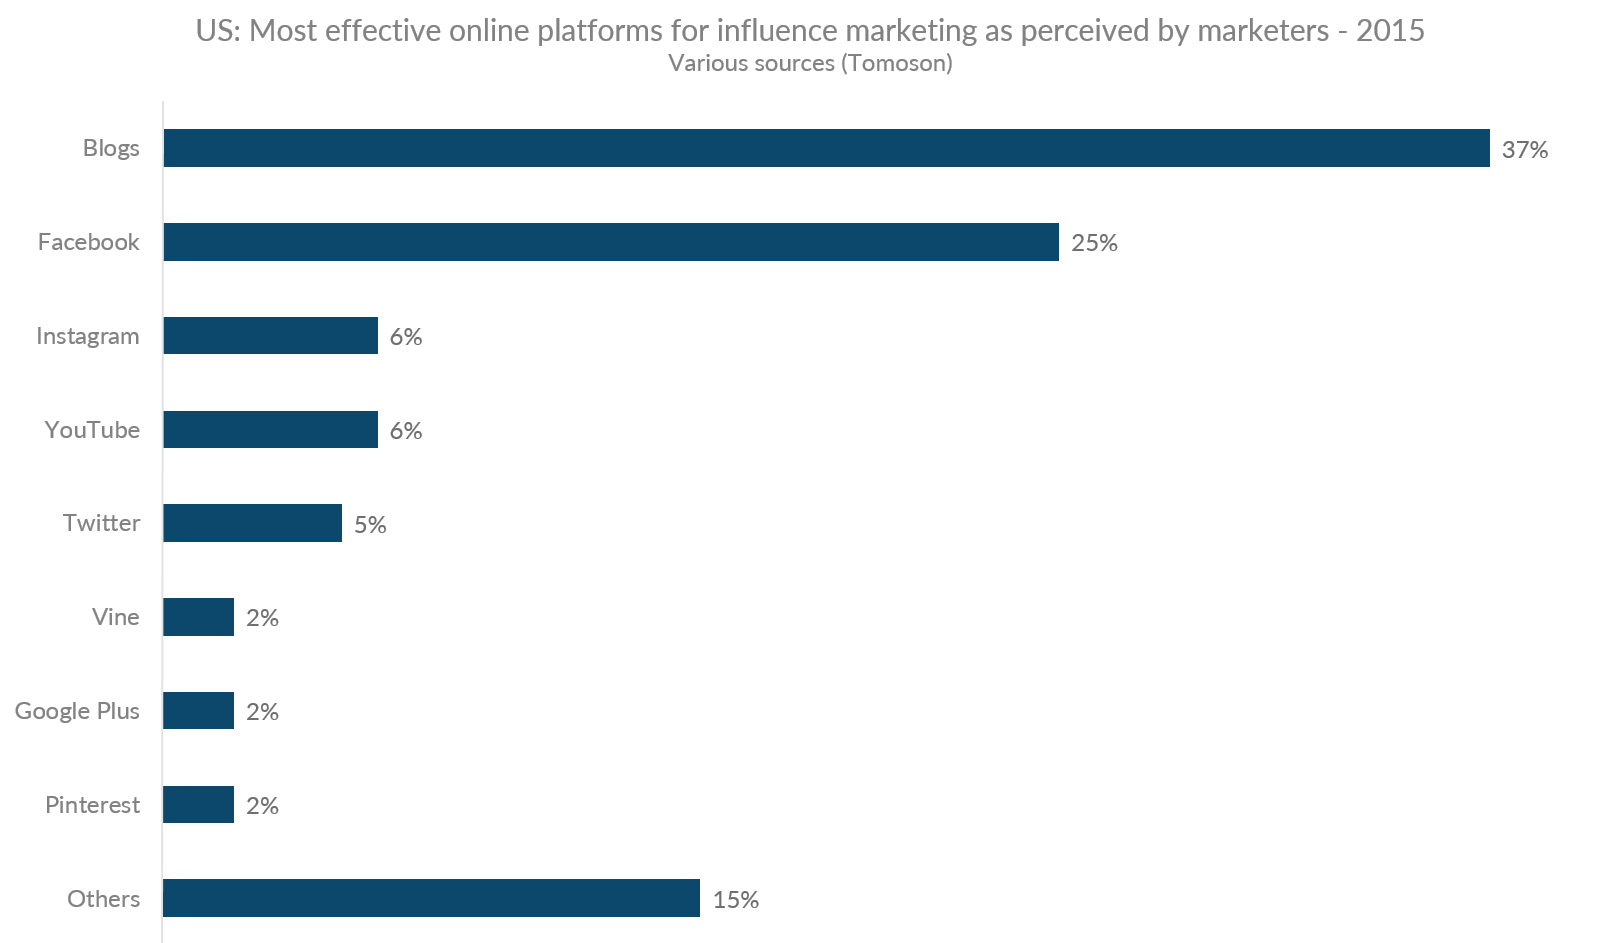 Graph showing the most effective US online platforms for influence marketing